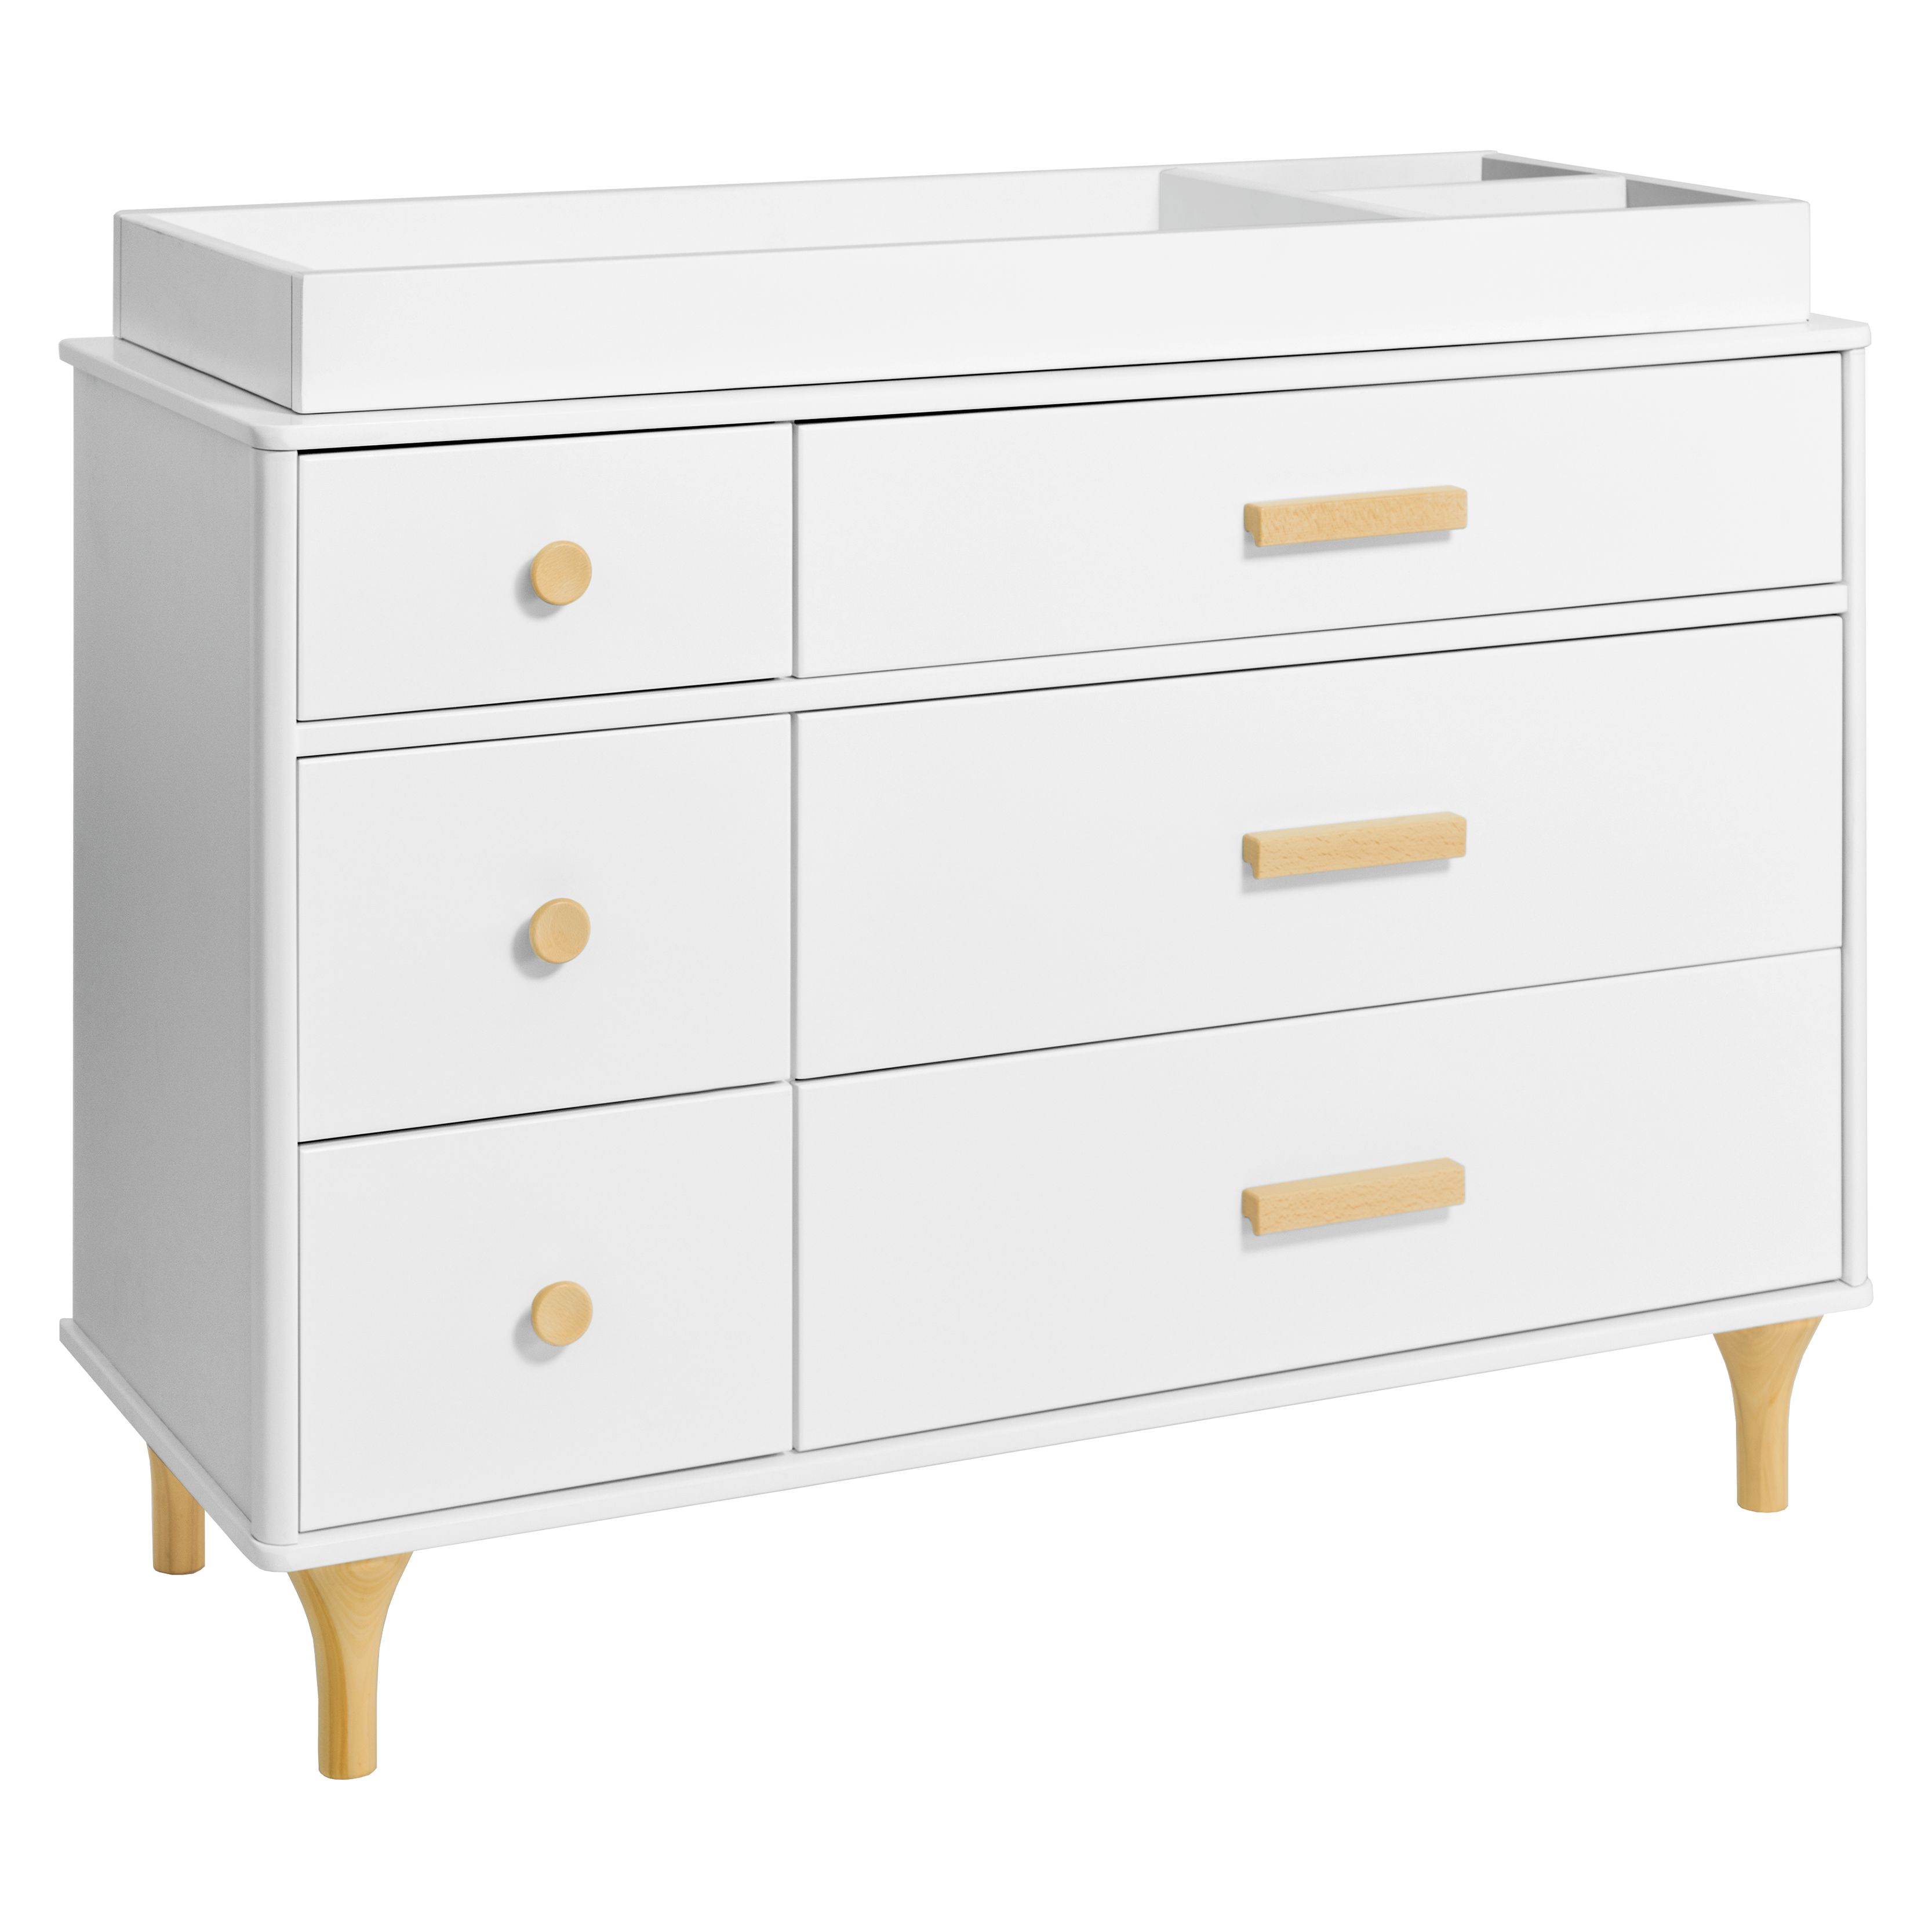 Babyletto Lolly 6 Drawer Double Dresser In 2021 Changing Table Dresser Double Dresser Drawers [ 3333 x 3333 Pixel ]